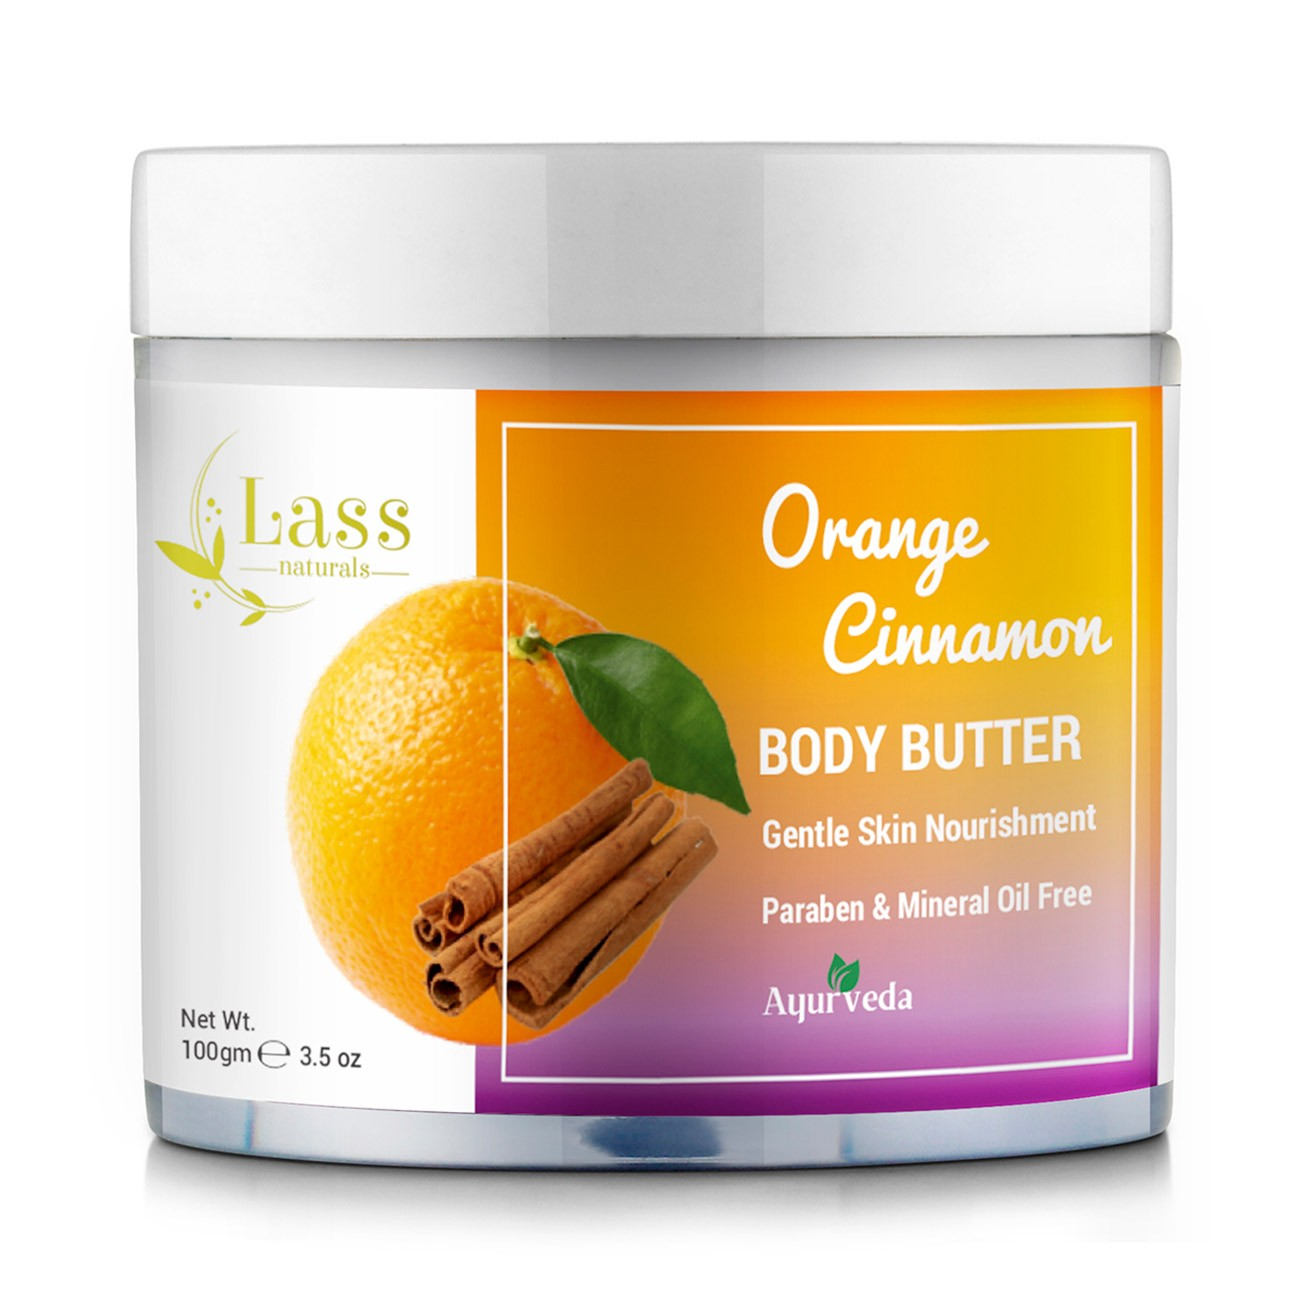 Orange Cinnamon Body Butter